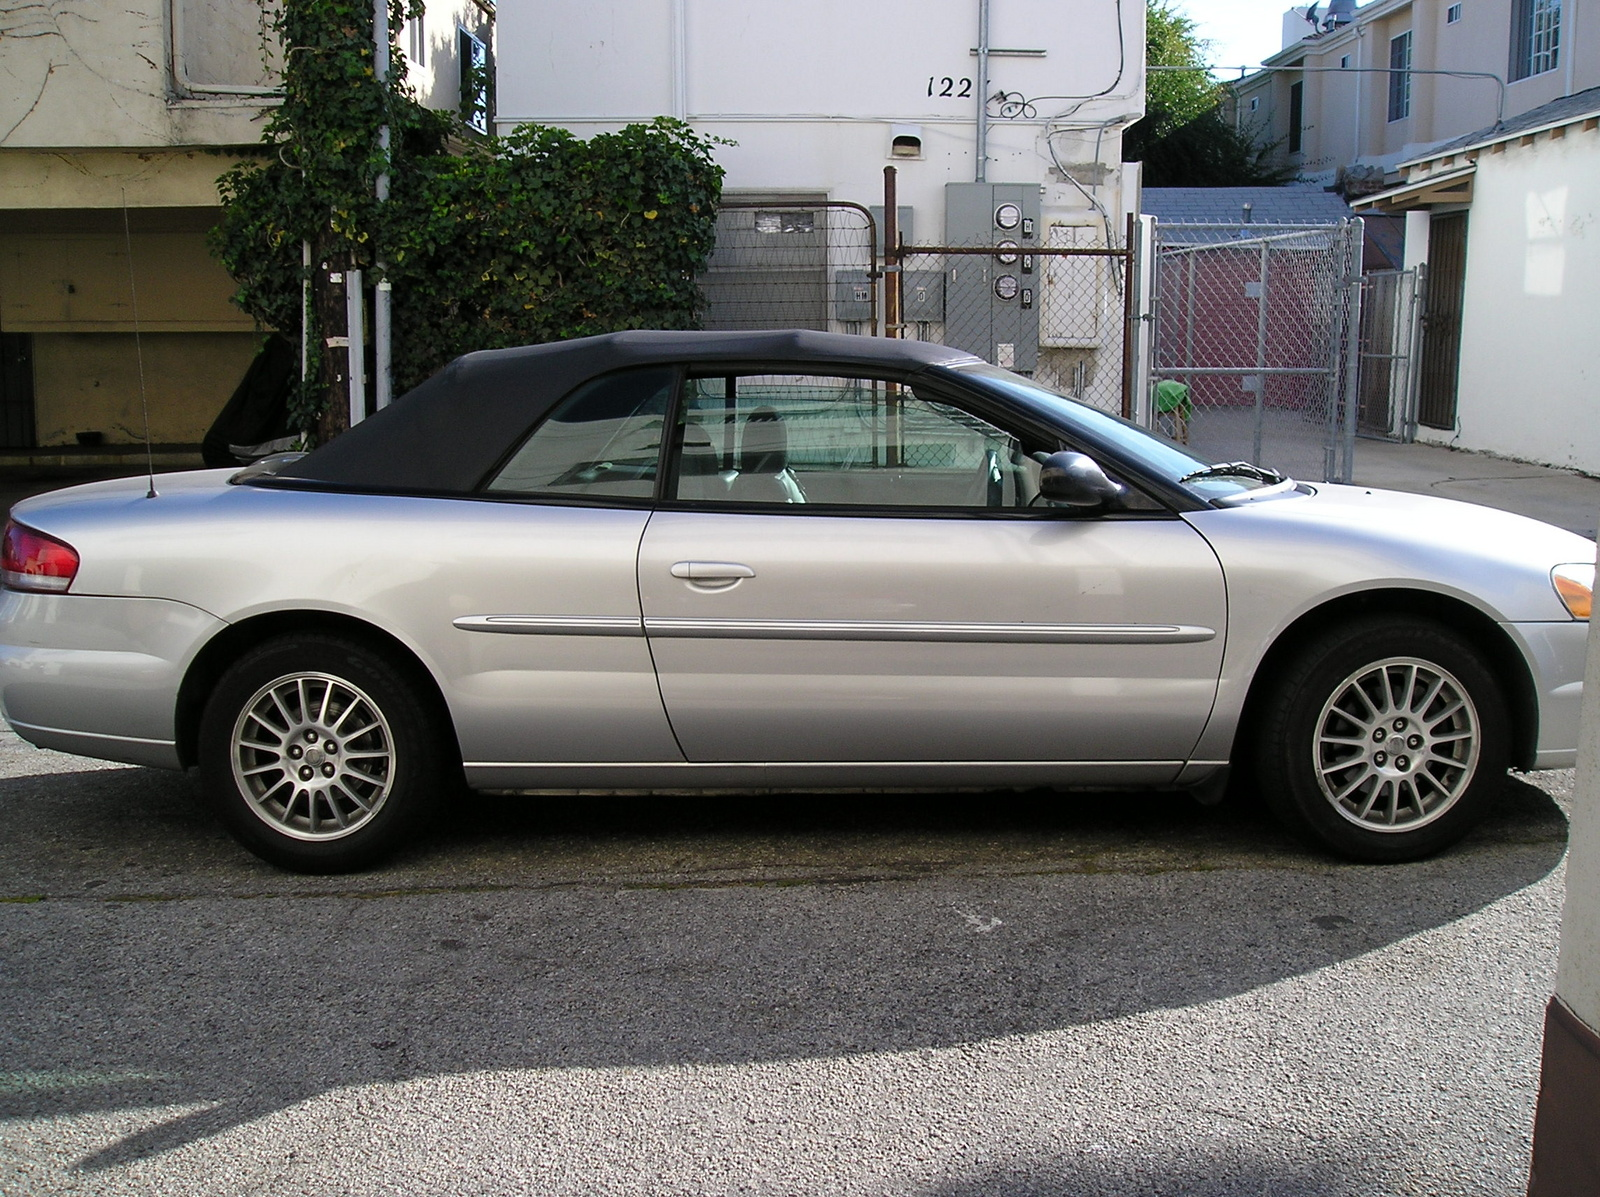 2004 chrysler sebring touring convertible picture exterior. Cars Review. Best American Auto & Cars Review